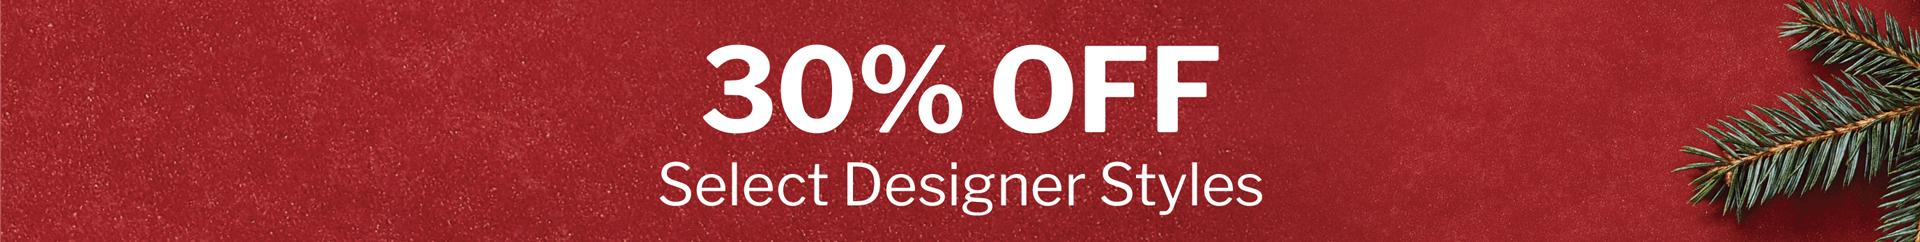 30% OFF SELECT DESIGNER STYLES